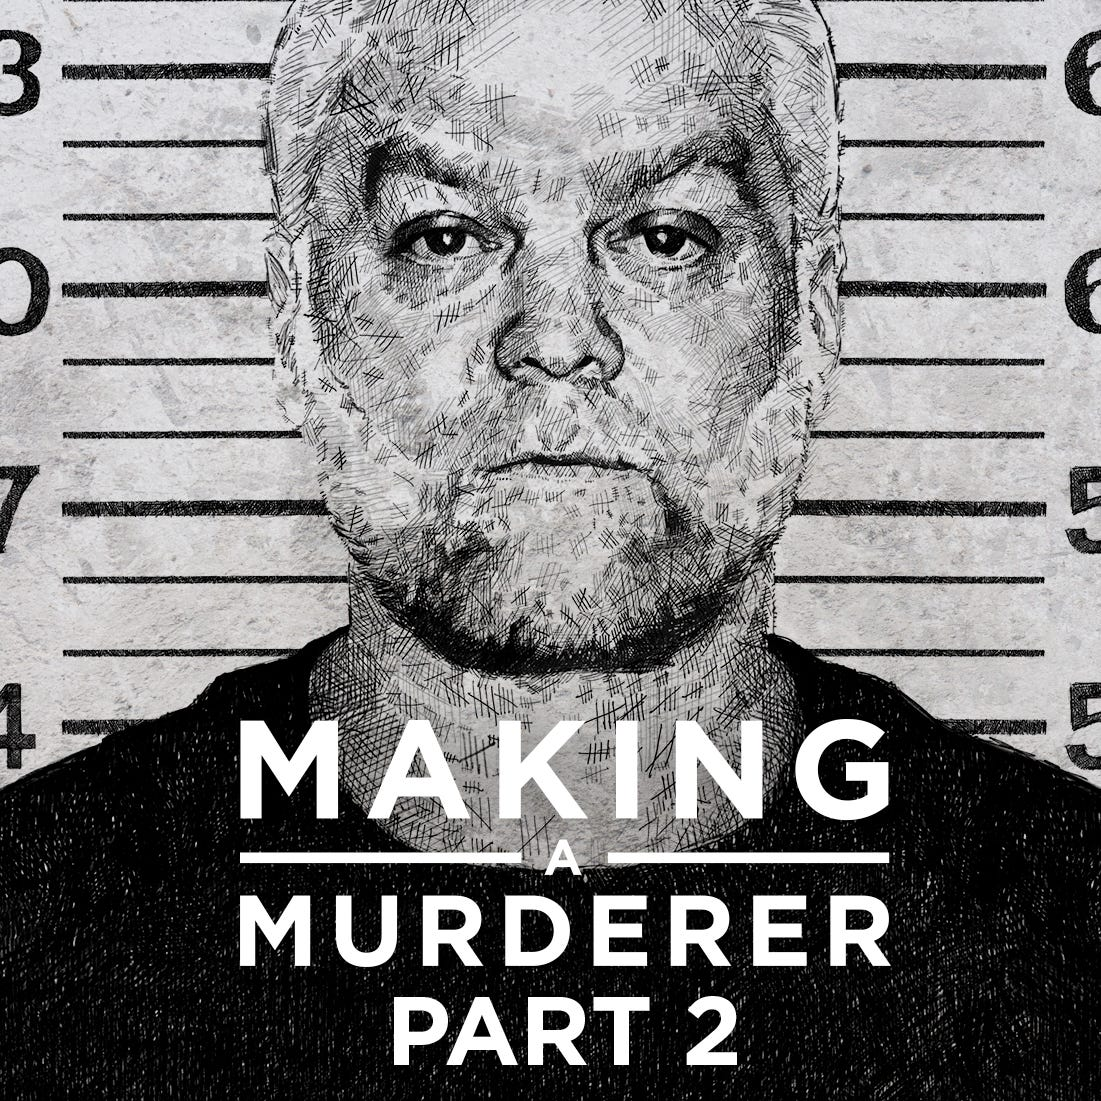 'Making a Murderer:' Things to know before your Part 2 binge (spoiler alert!)